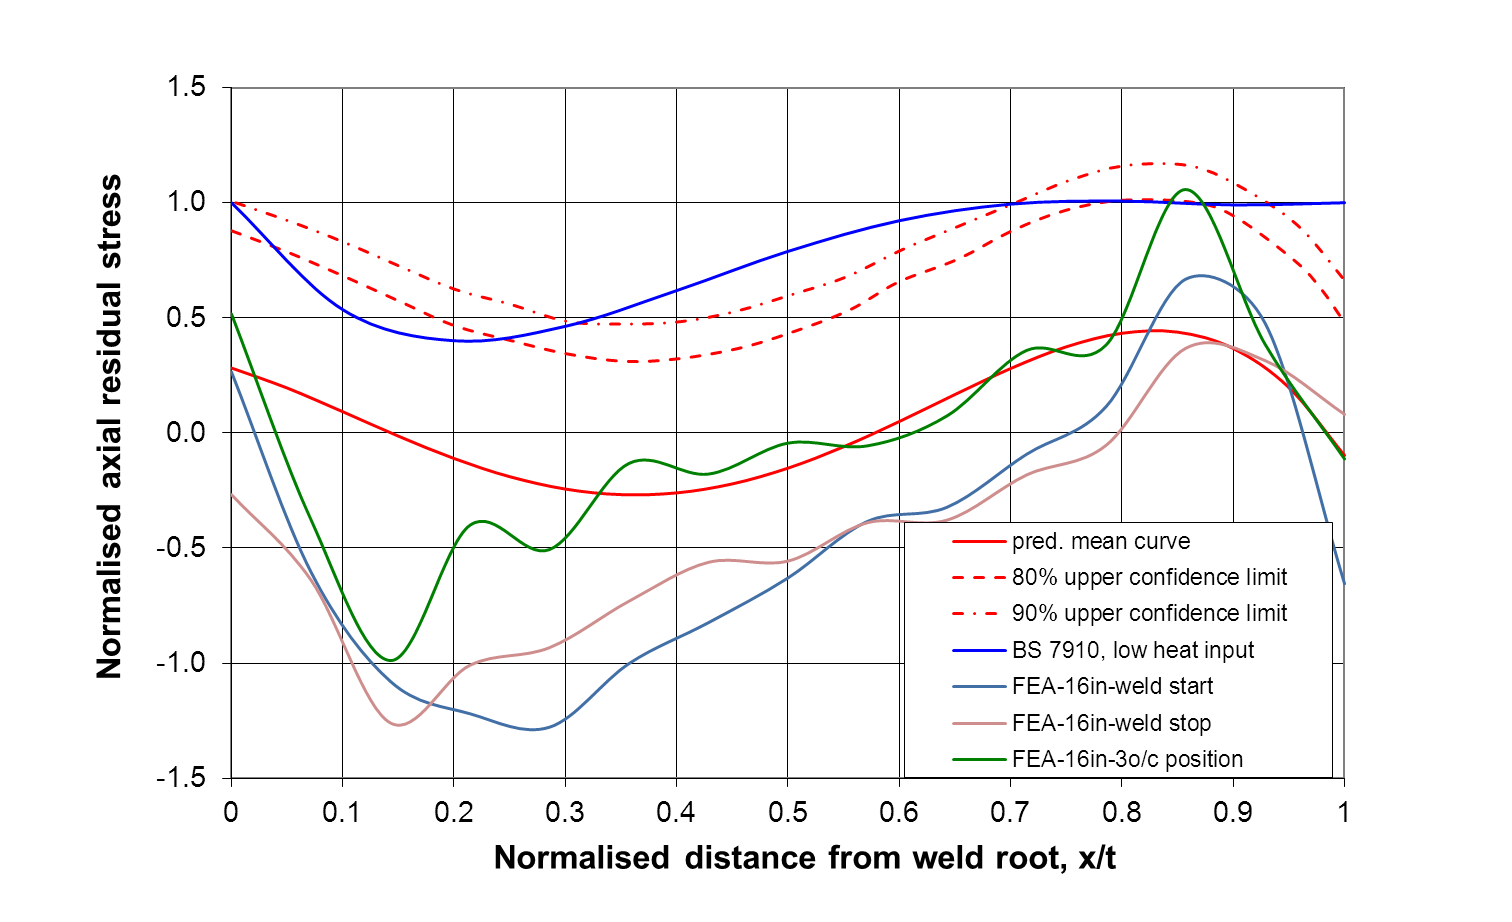 FIGURE 8 Comparison of the residual stress distributions between the experimental data with different confidence levels and the FE predictions for the 16 inch pipe.